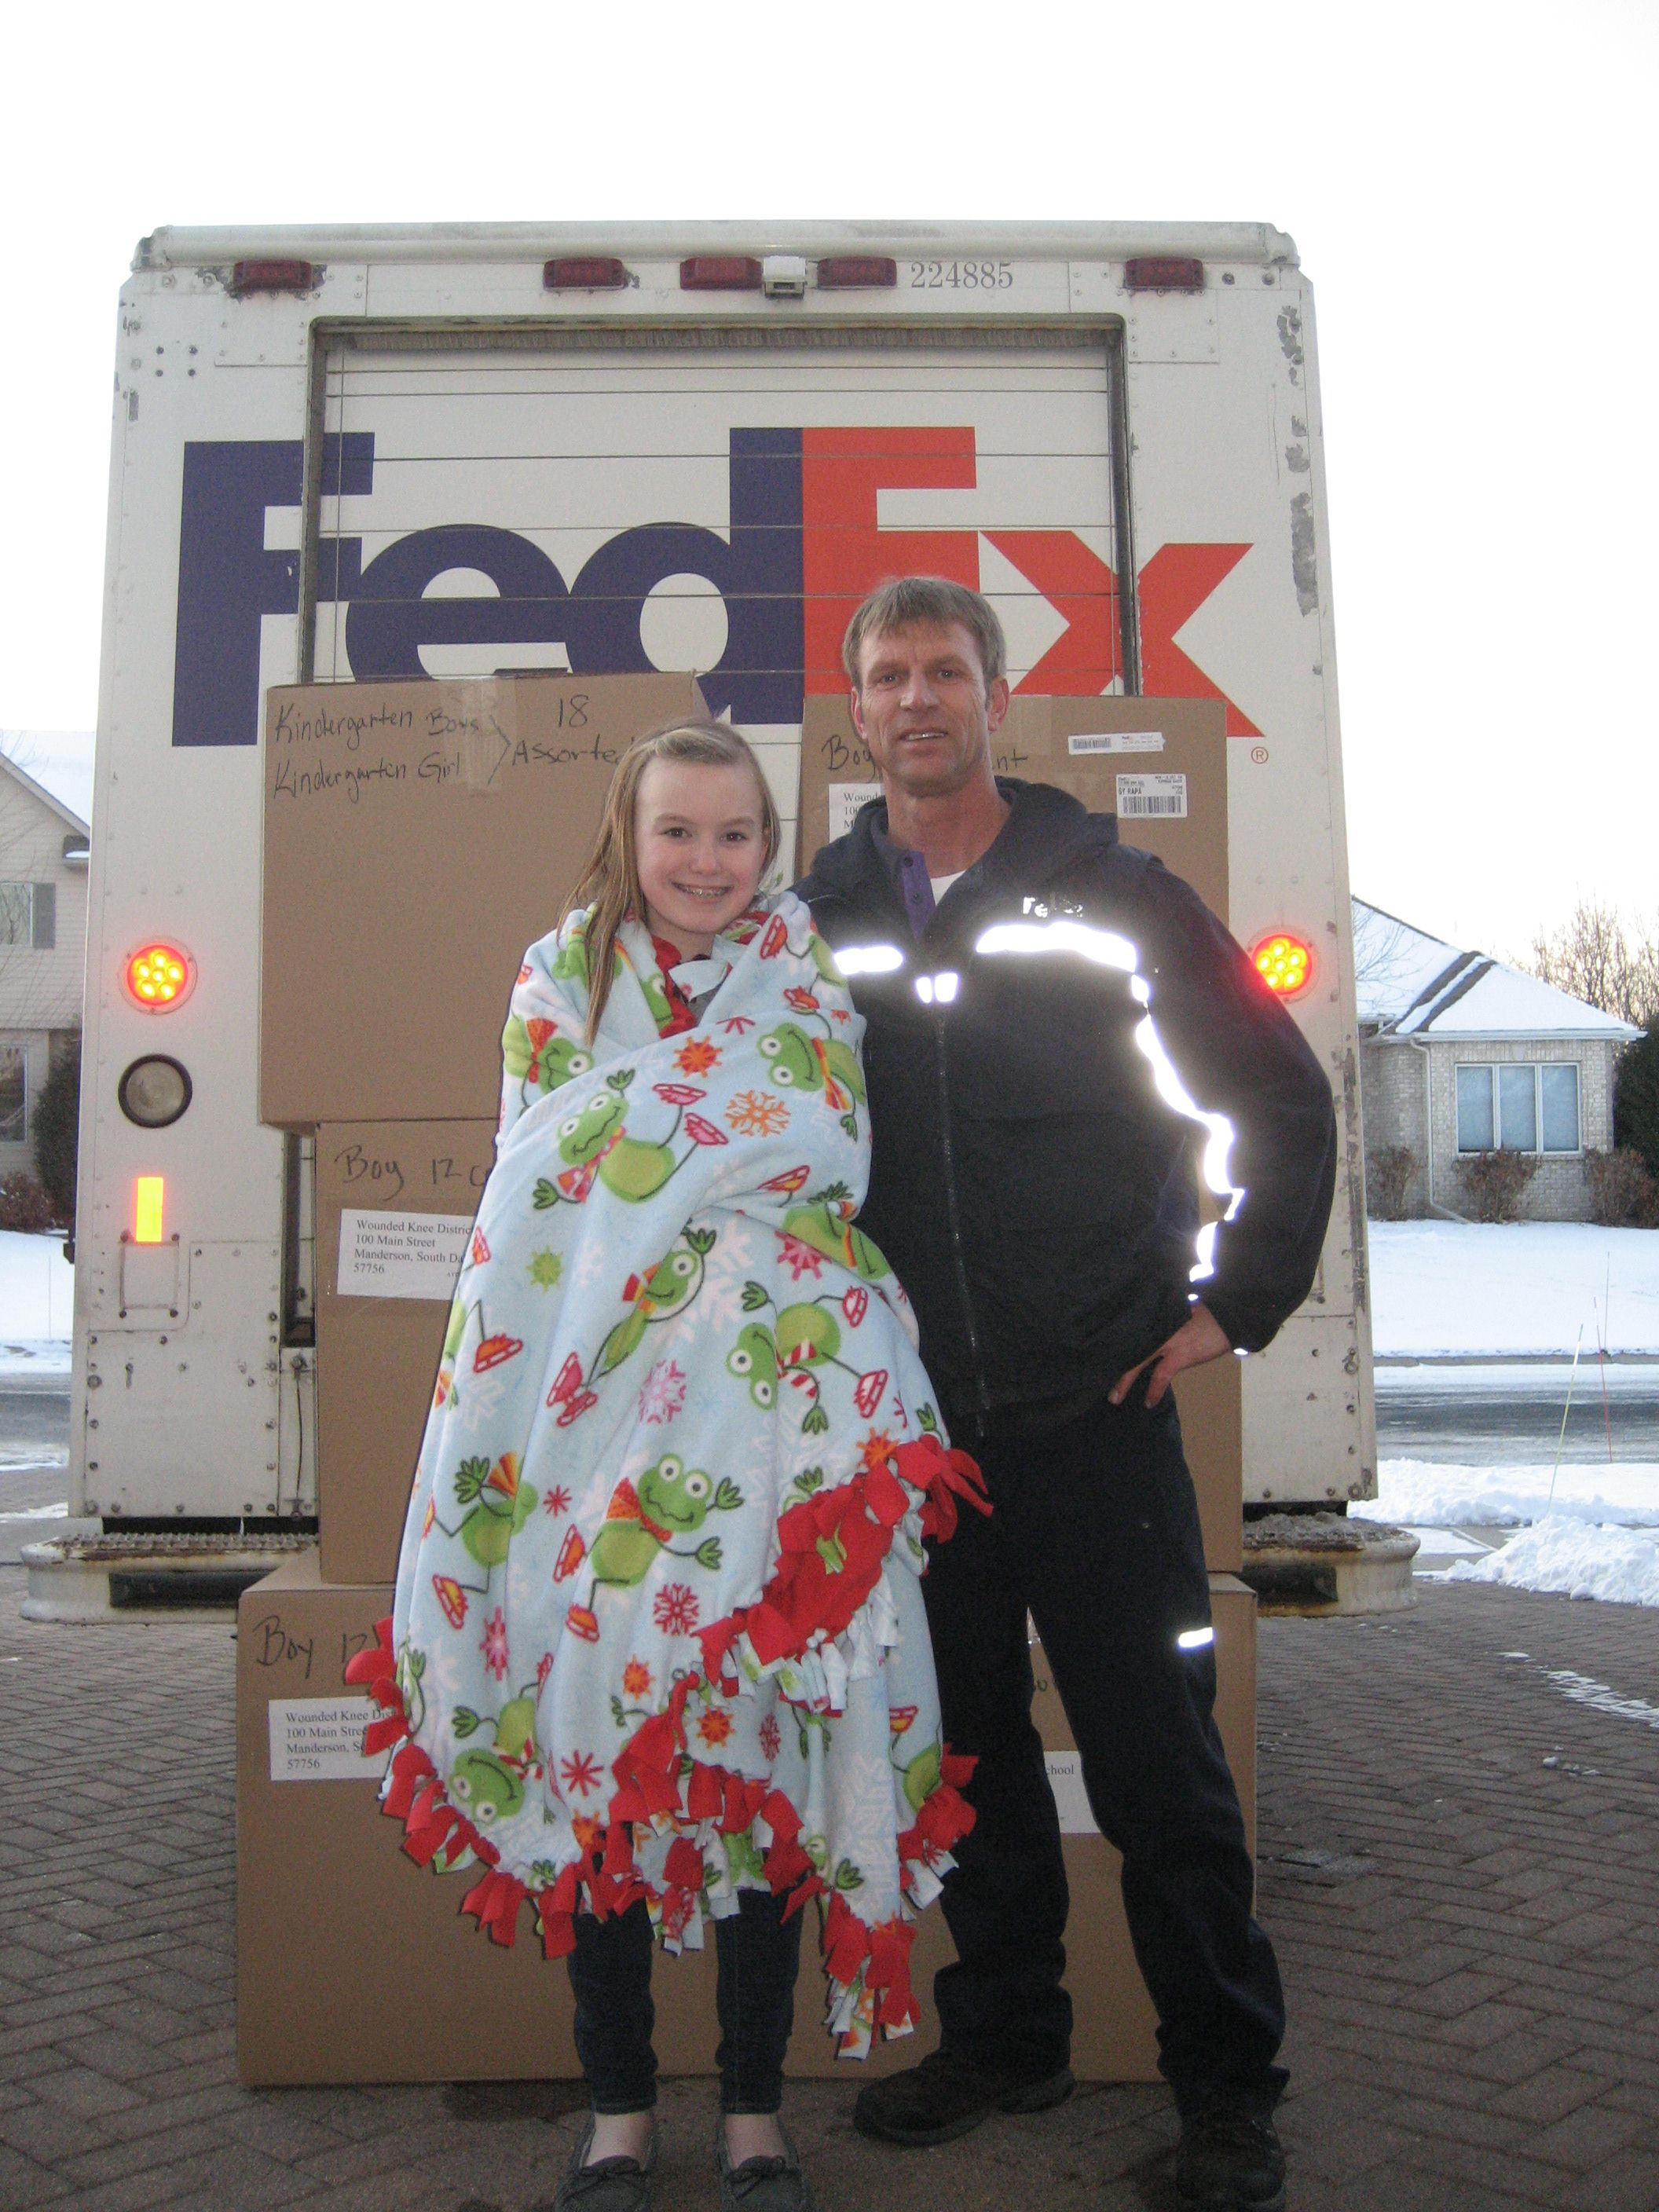 Special delivery of blankets for Christmas on Indian